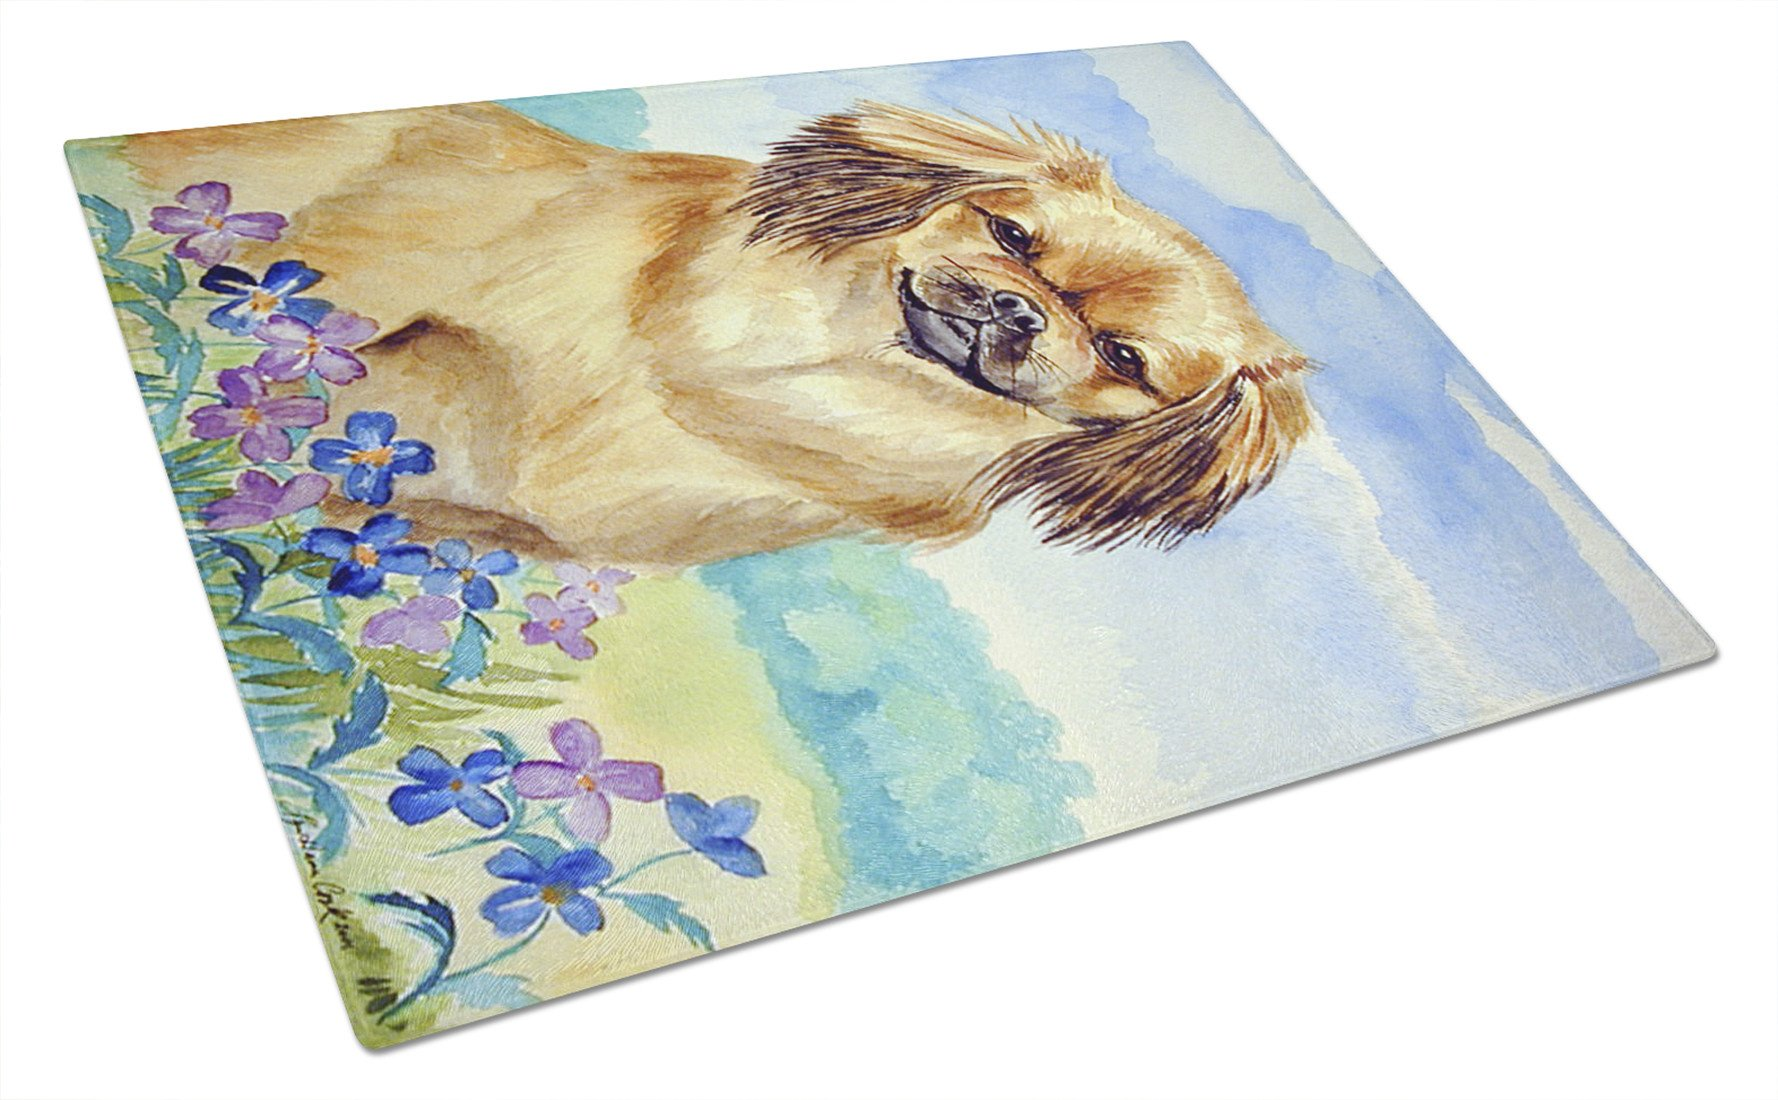 Tibetan Spaniel Glass Cutting Board Large by Caroline's Treasures